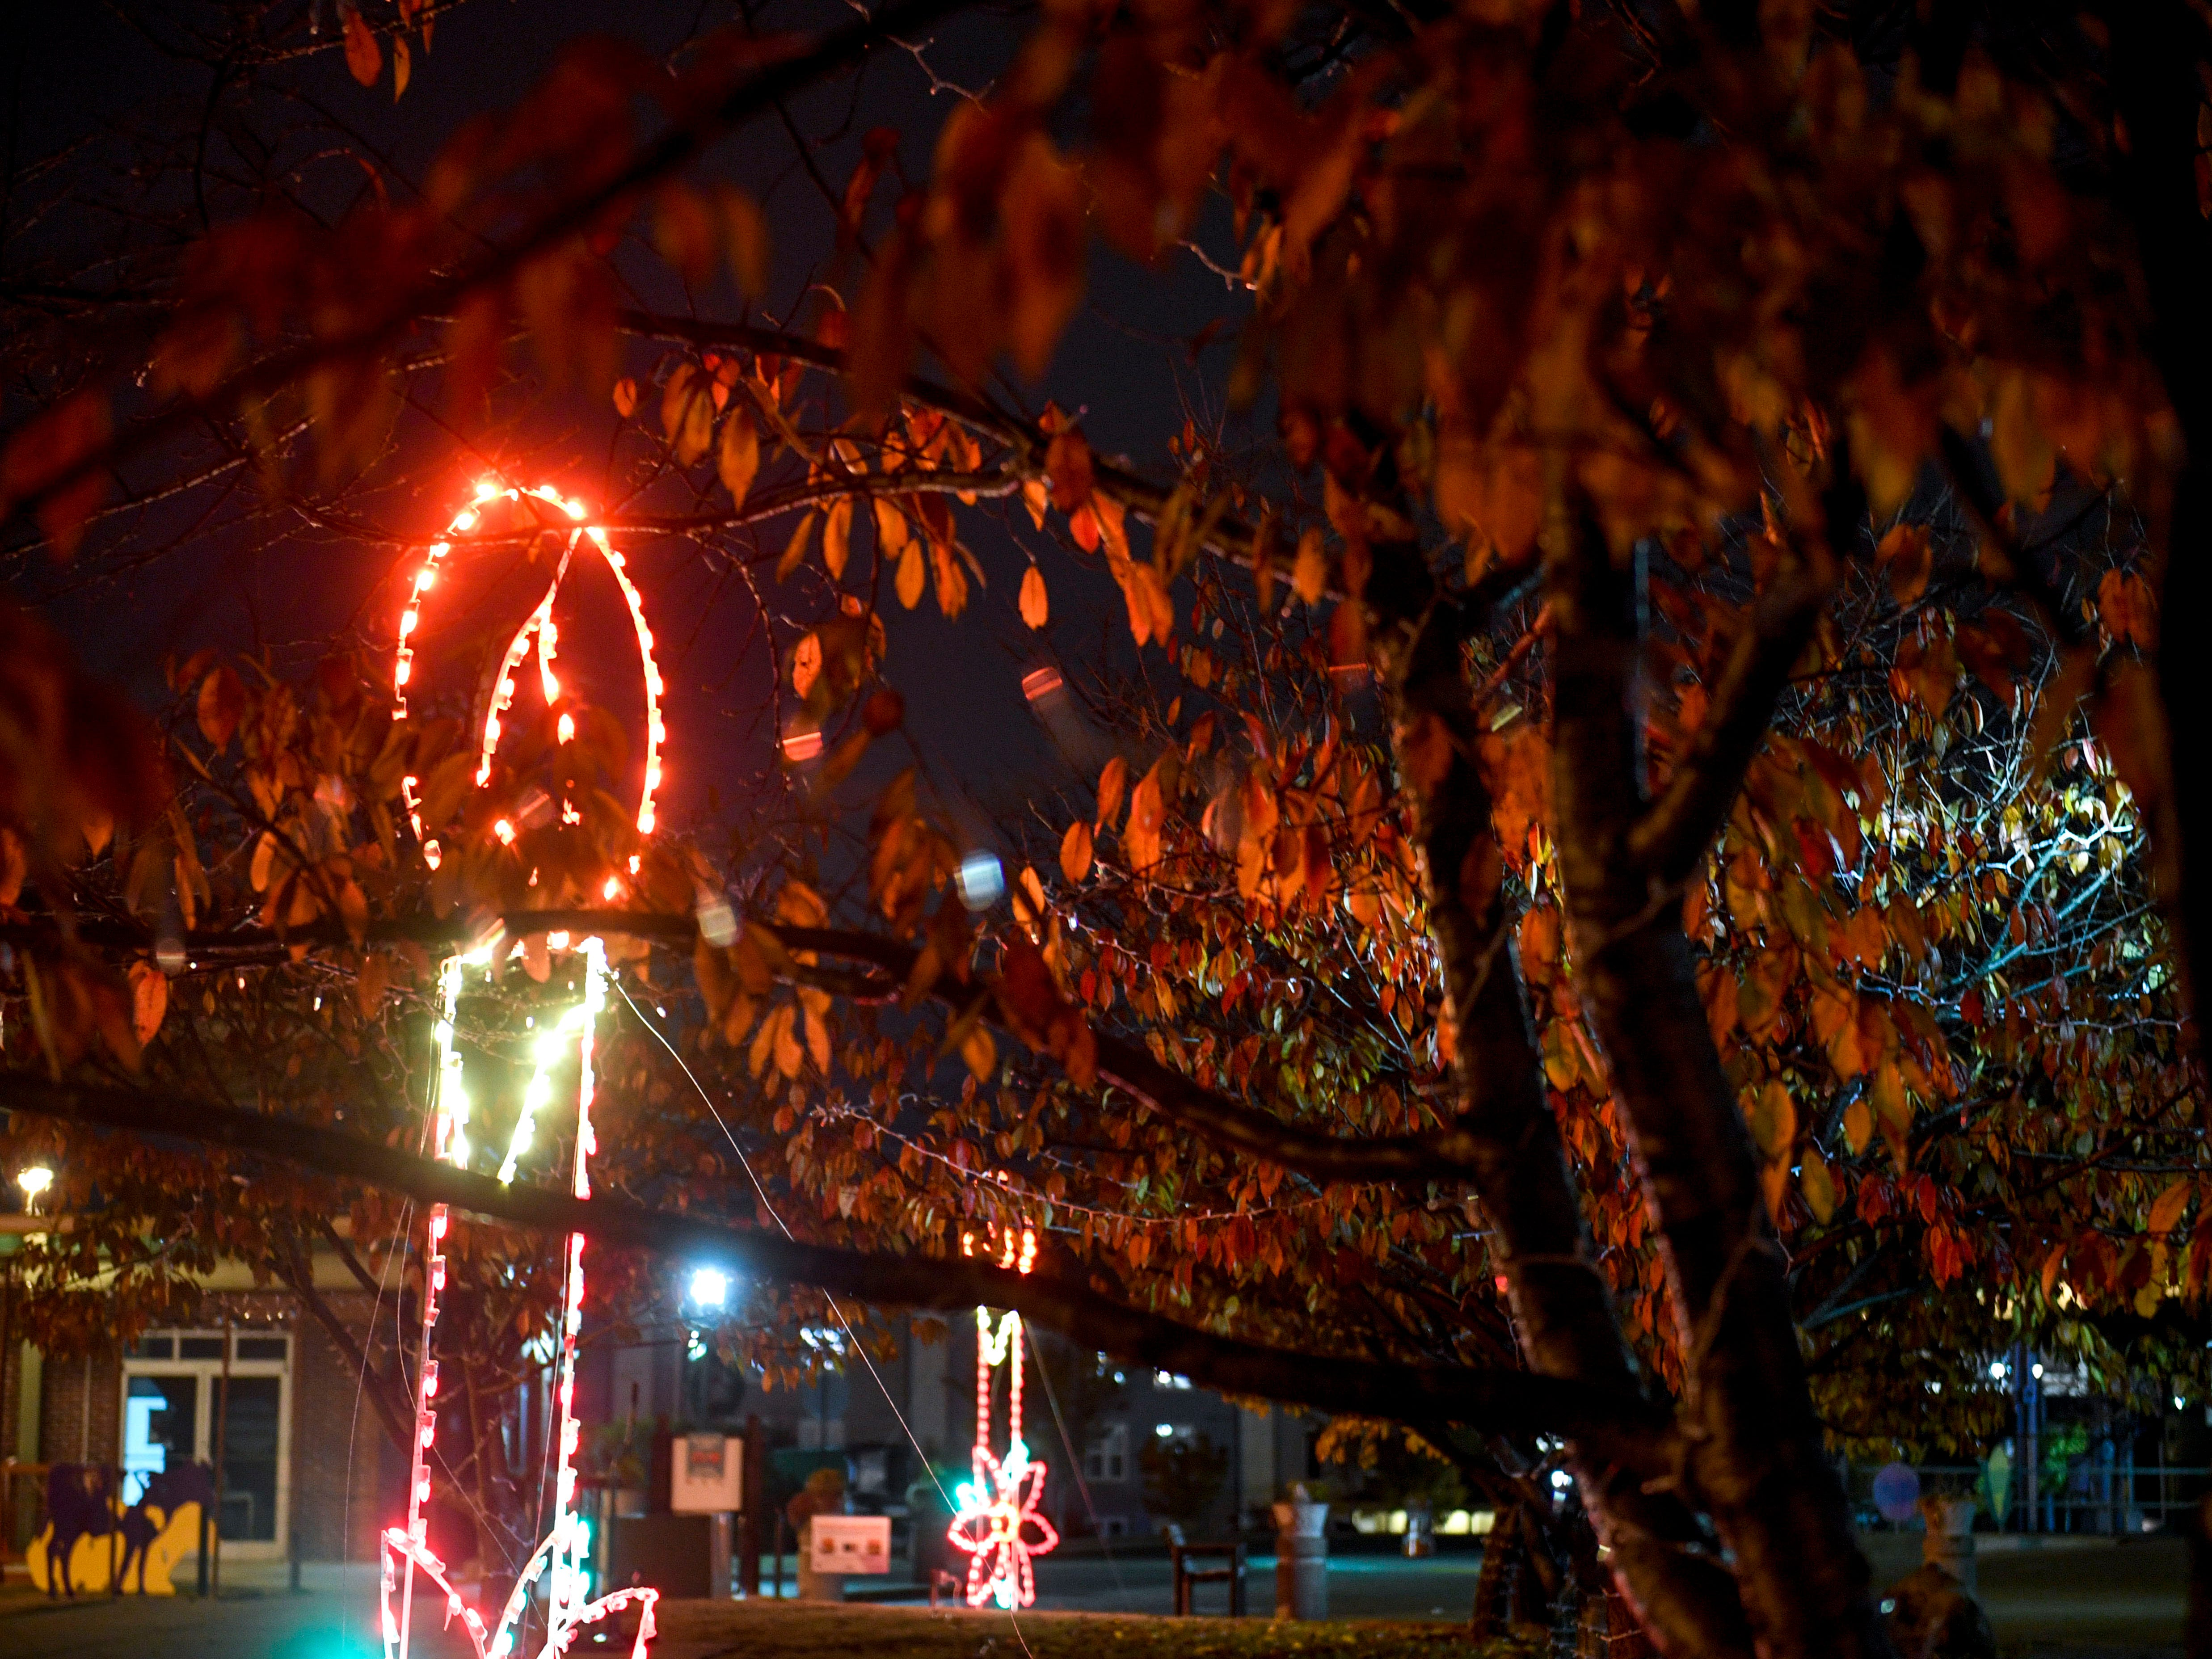 Holiday displays celebrating the Christmas season including wreaths, lighting displays, and Santa's house can be seen set up throughout Downtown in Jackson, Tenn., on Monday, Nov. 19, 2018.